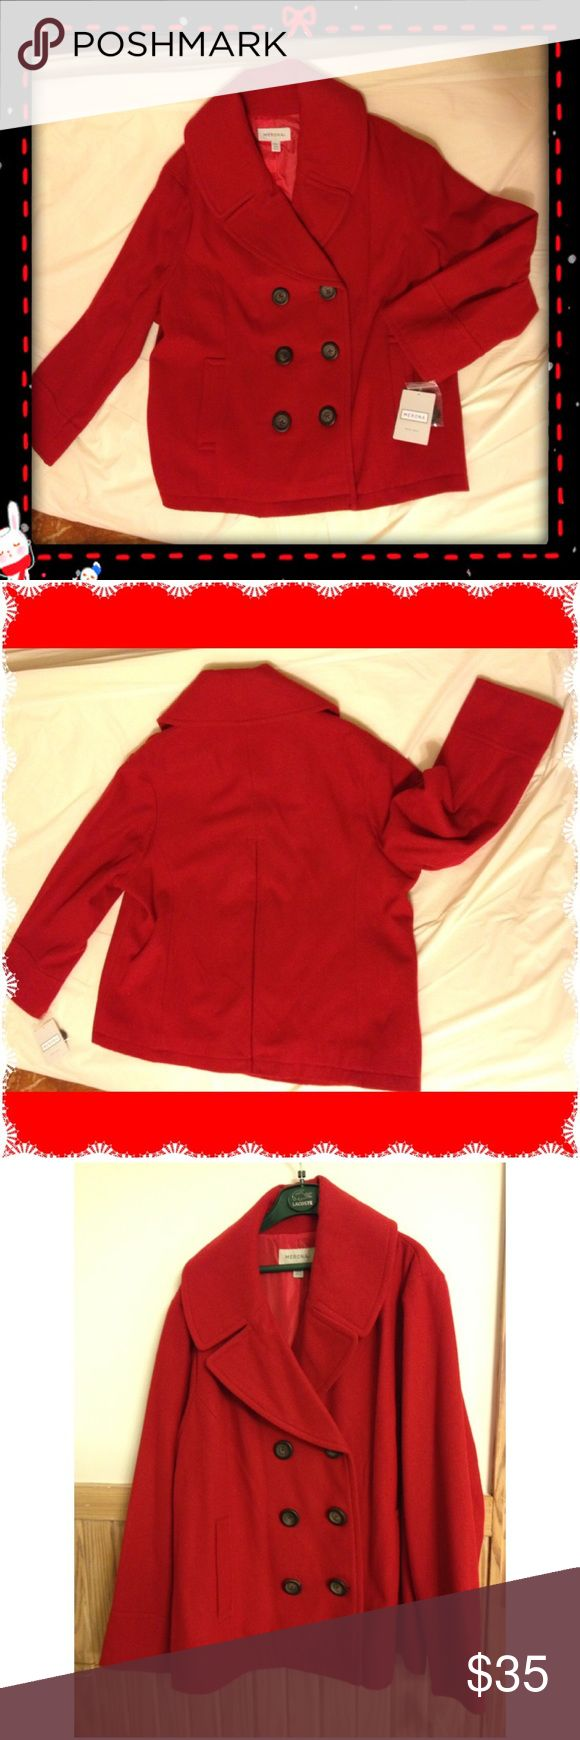 New Plus size Pea coat Brand new with tags. Red Pea coat size 24/26. Smoke free & Pet free home. Merona Jackets & Coats Pea Coats